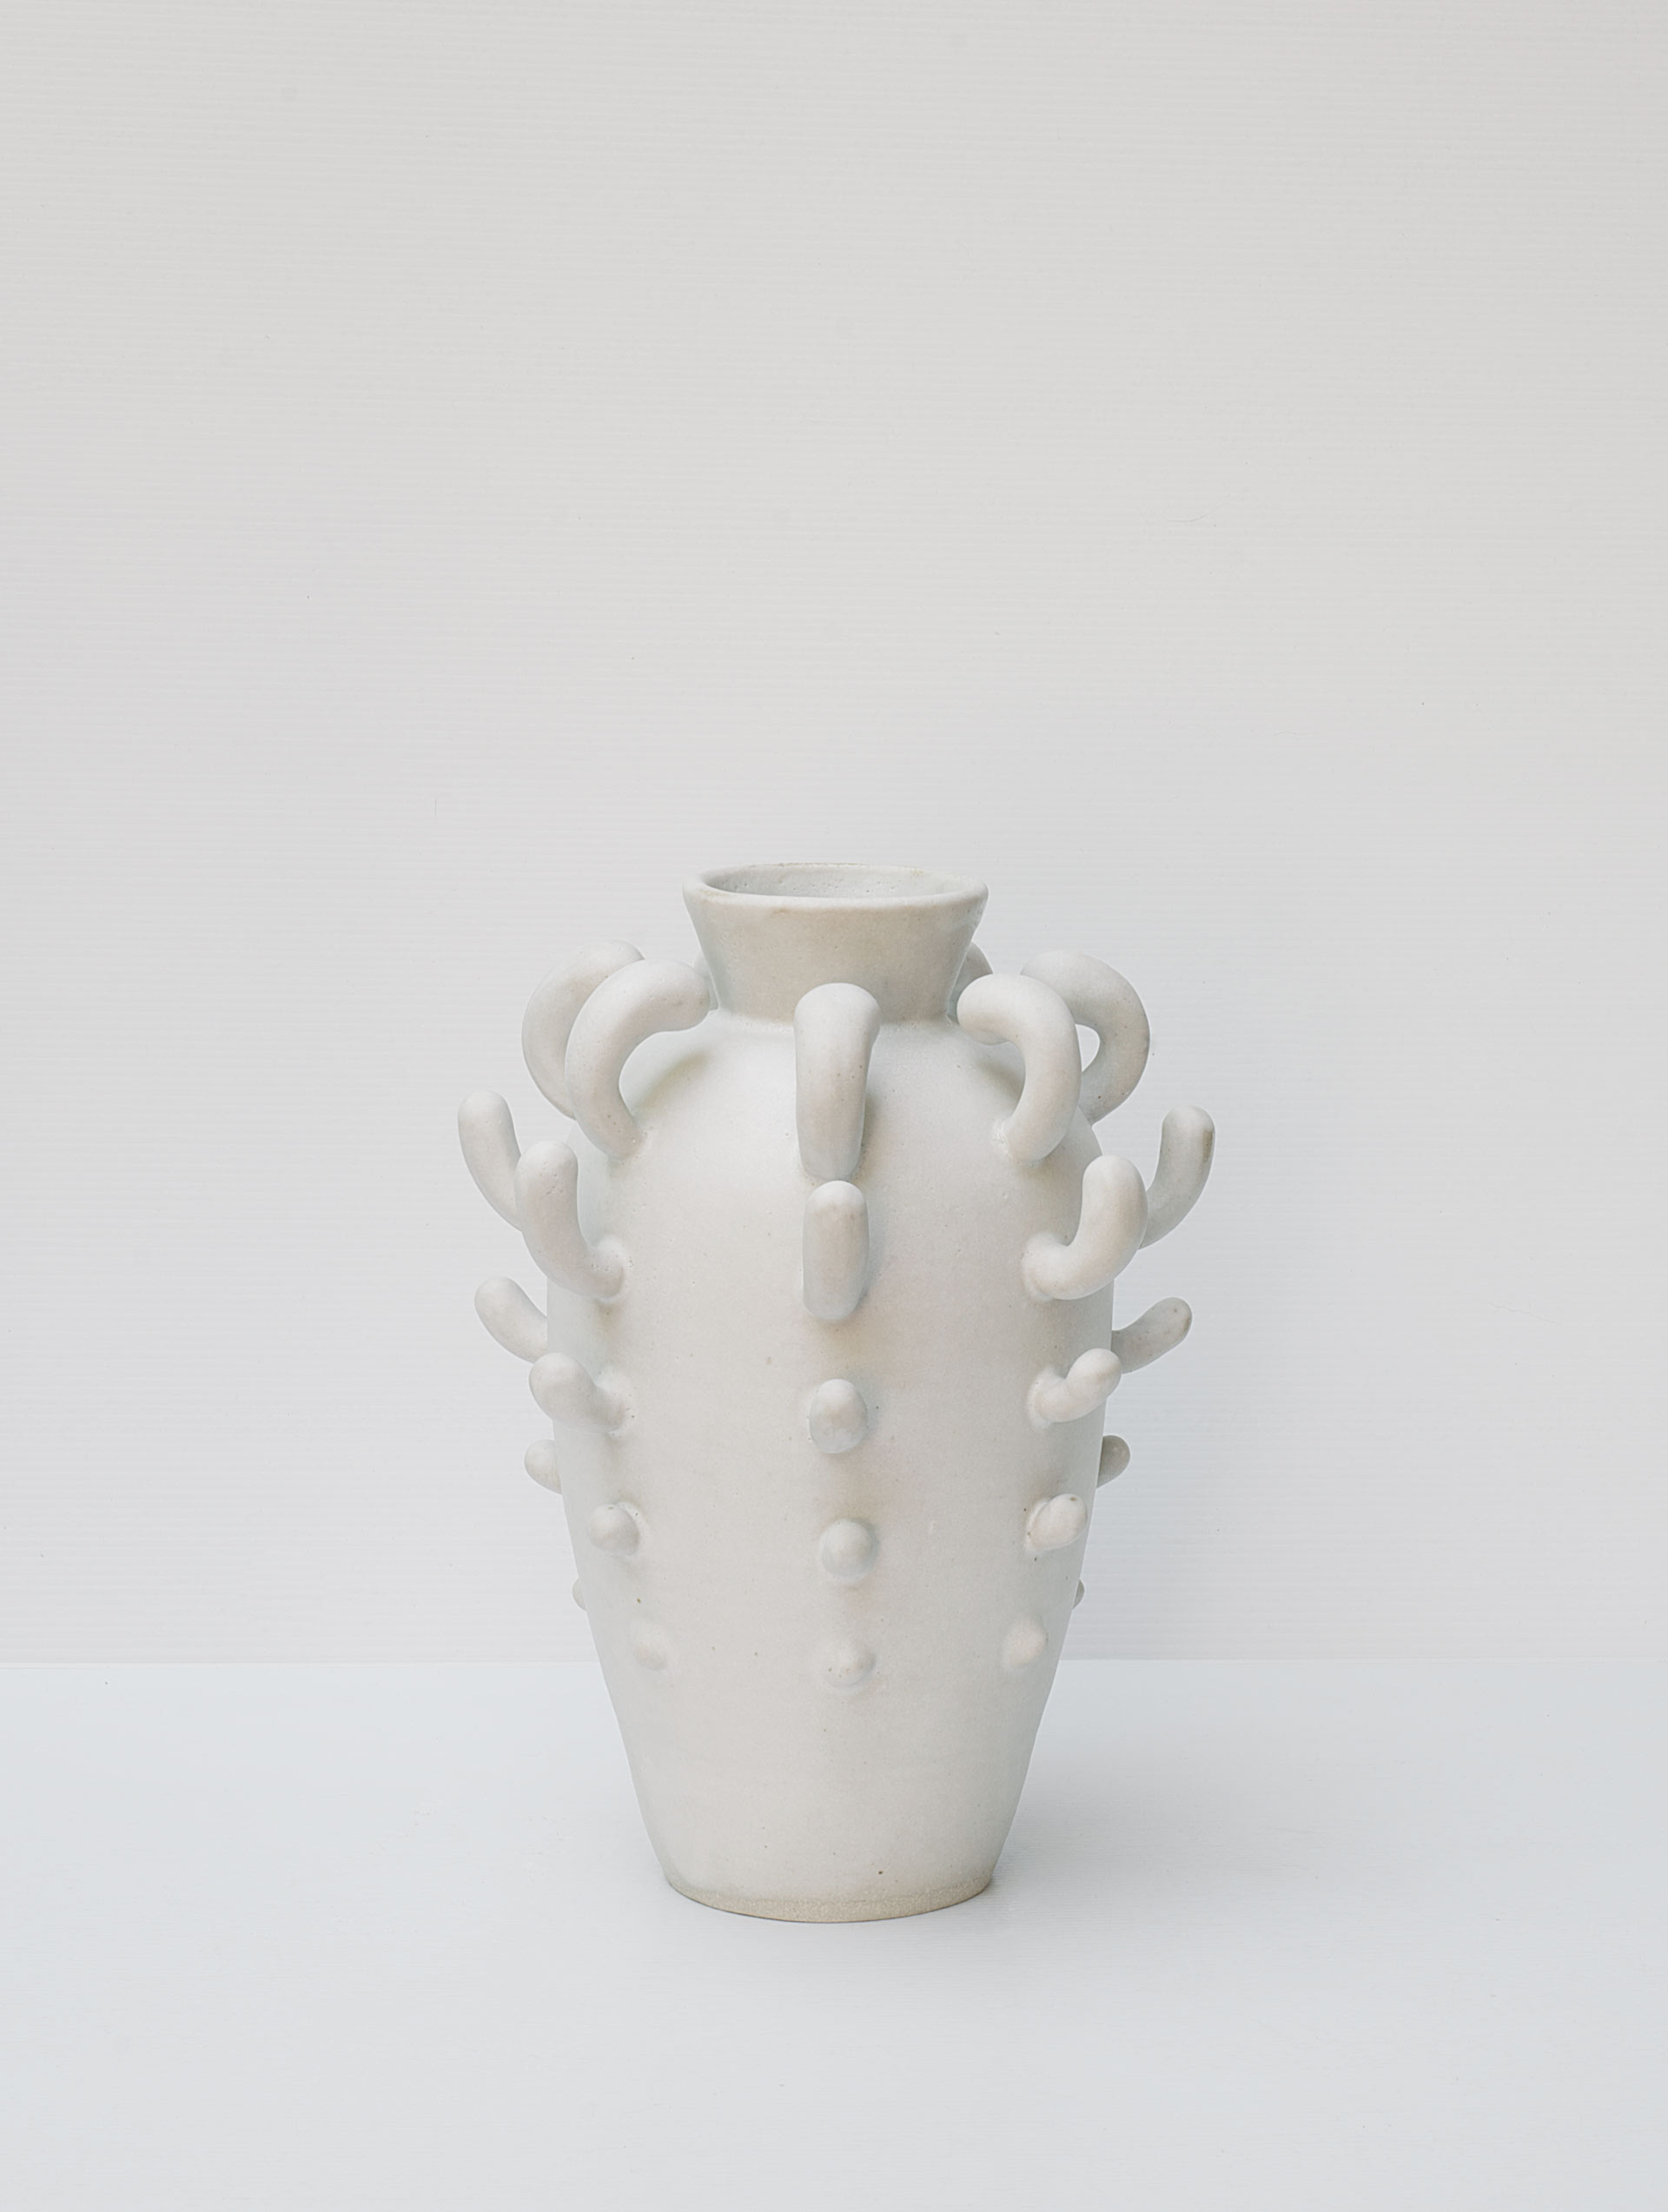 Sprouting Vase, 2017